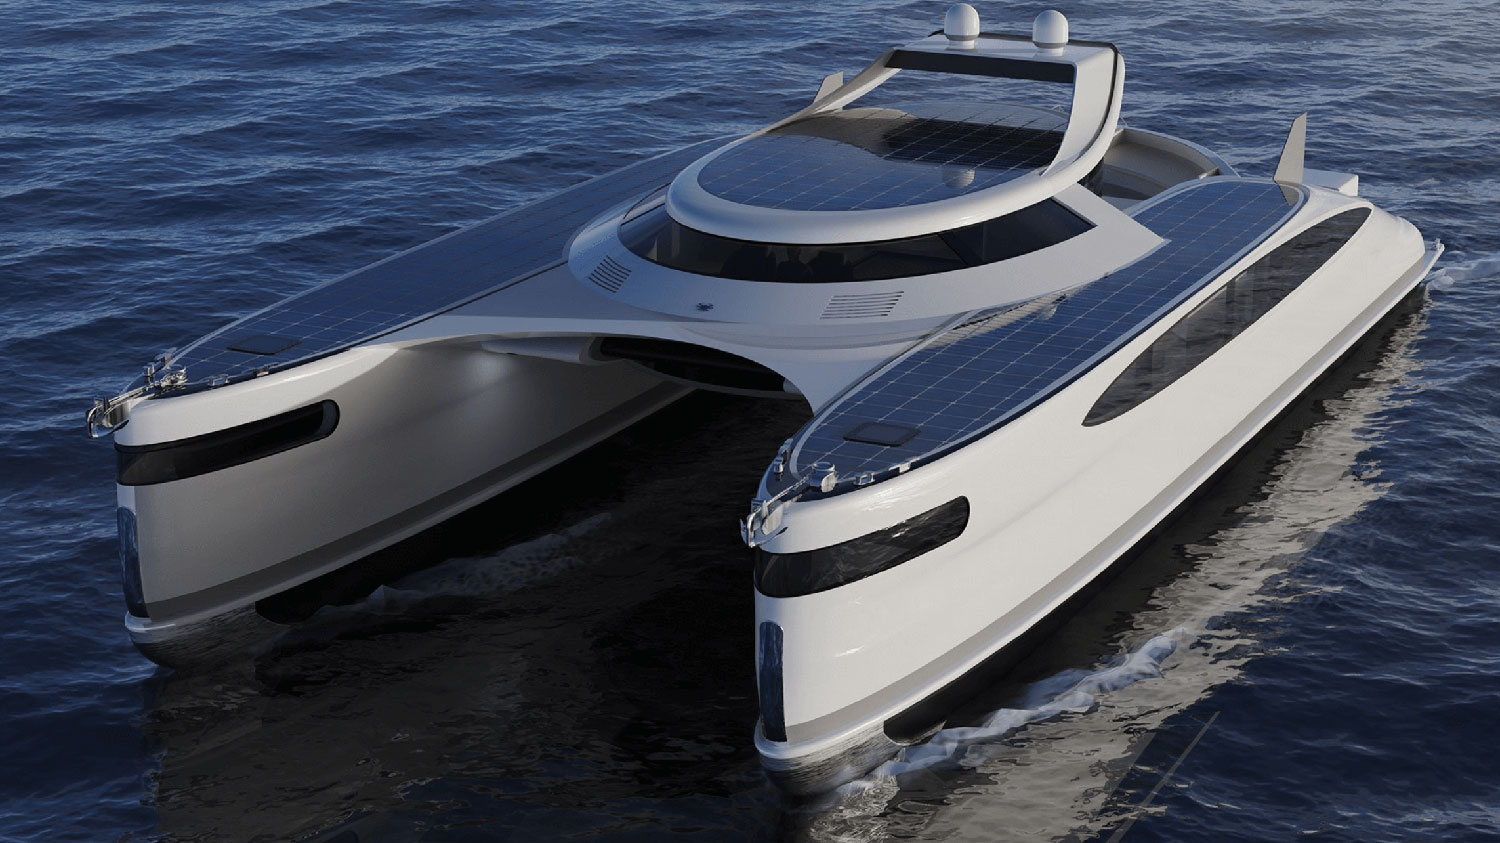 Pagurus, a solar-powered amphibious catamaran capable of moving also on land